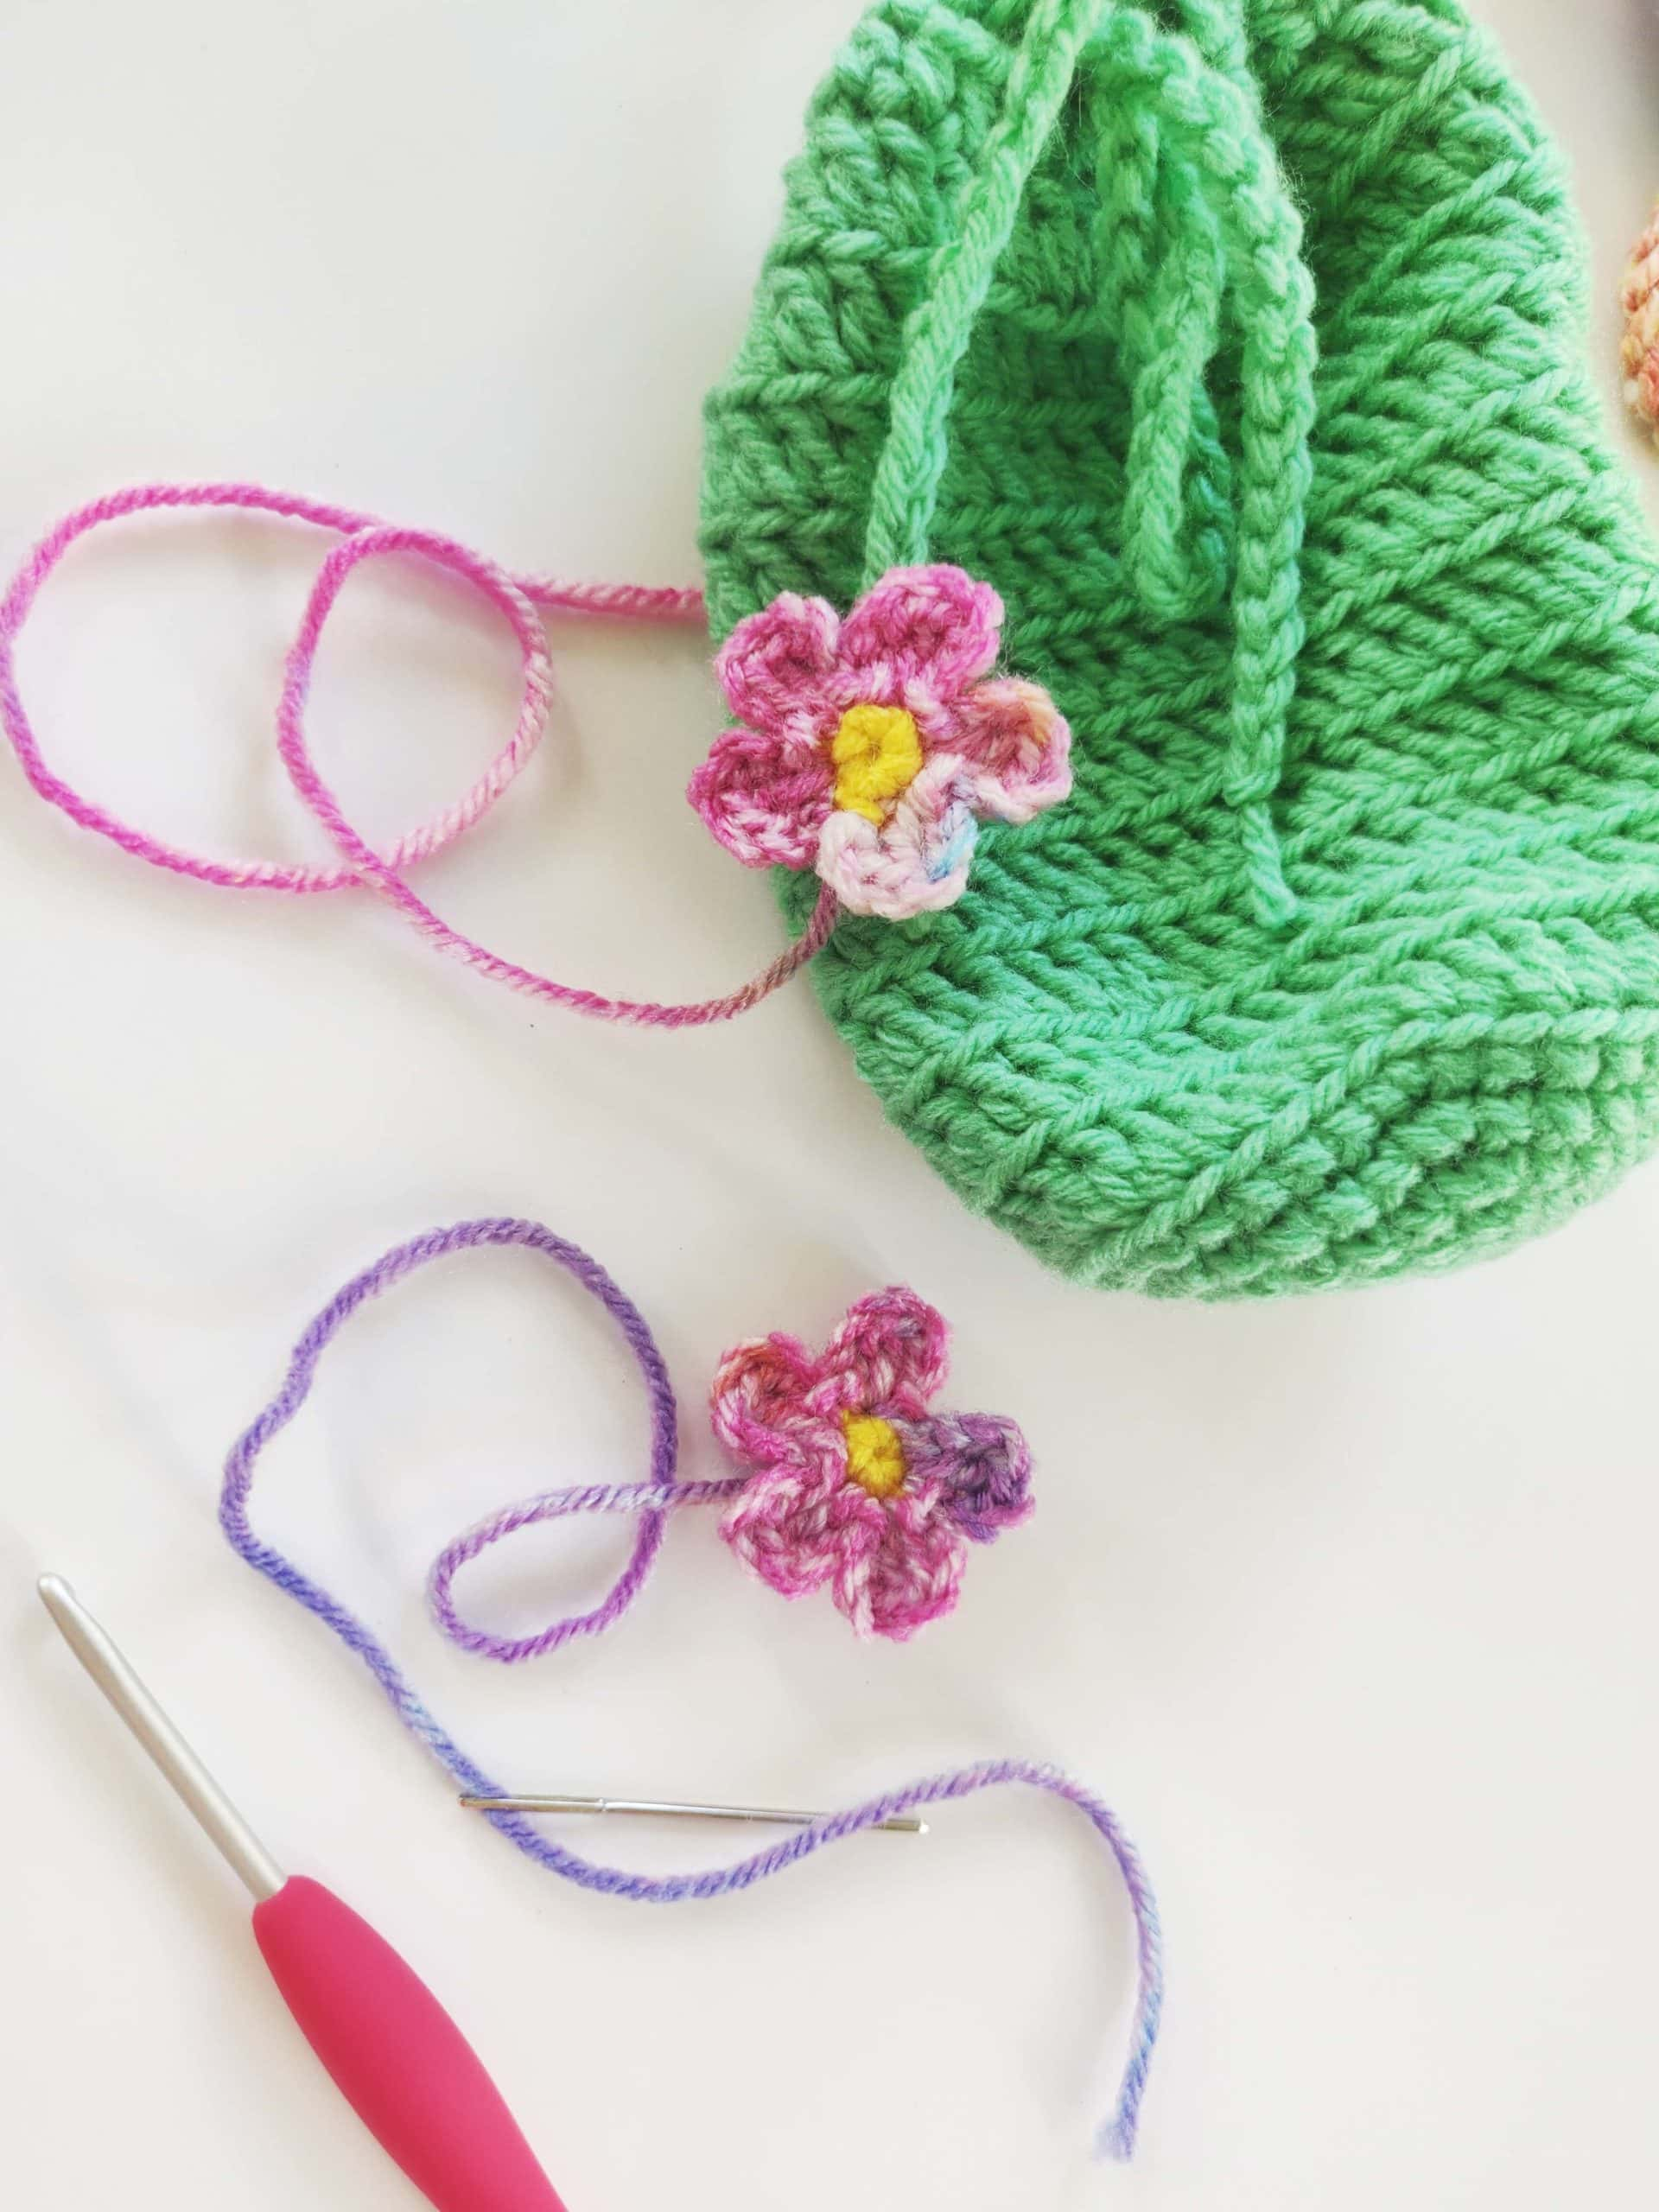 Two crochet flowers going to be sewn on the green ties.